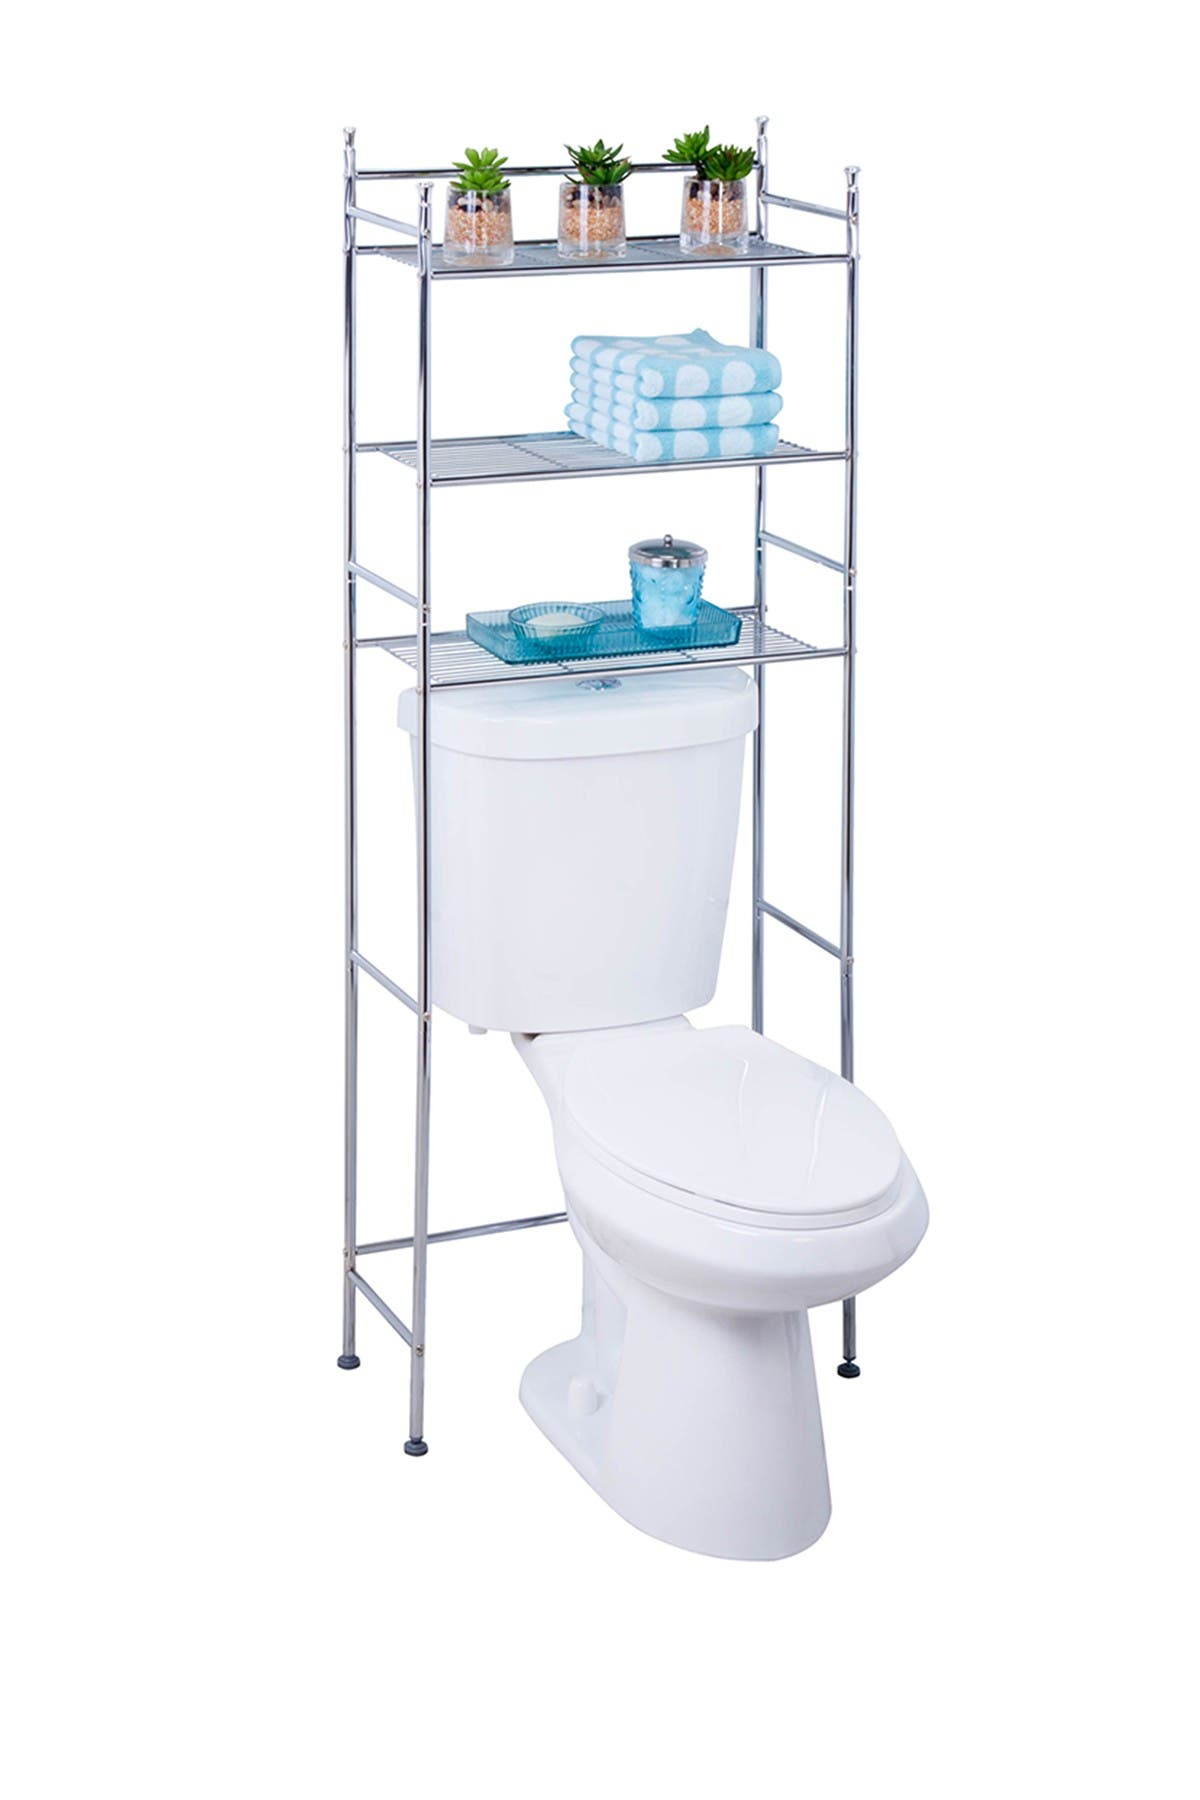 Image of Honey-Can-Do Chrome 3-Tier Over the Toilet Space Saver